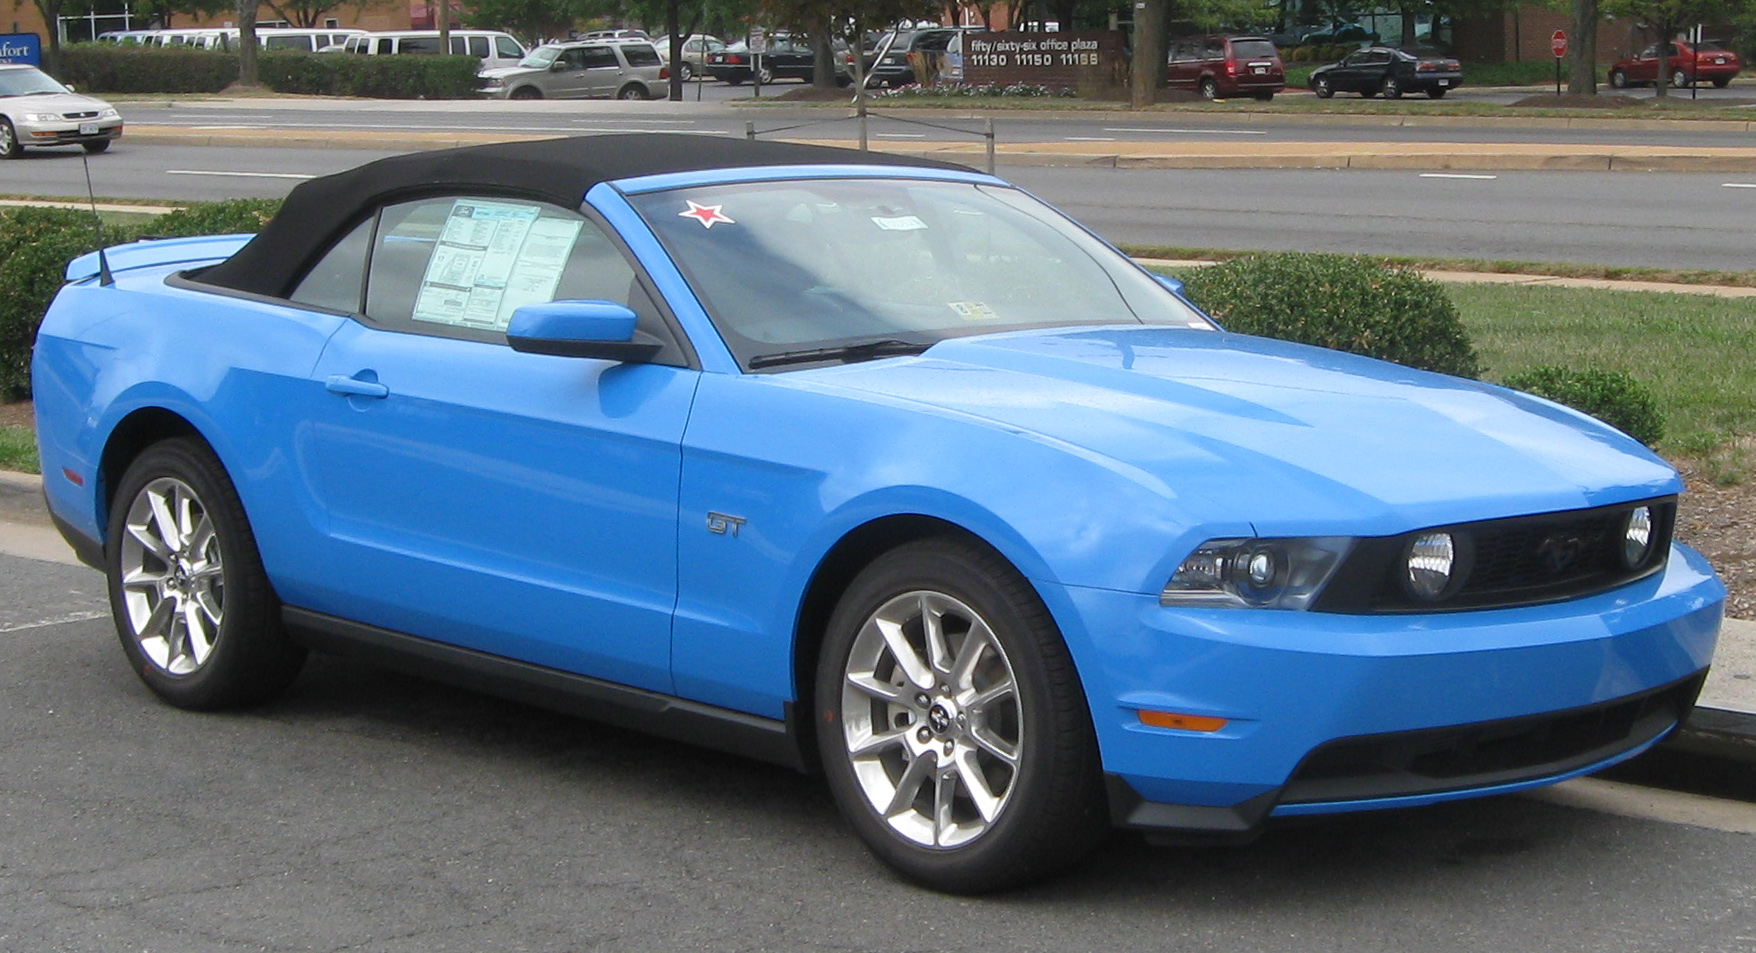 File 2010 Ford Mustang Gt Convertible 1 09 07 2009 Jpg